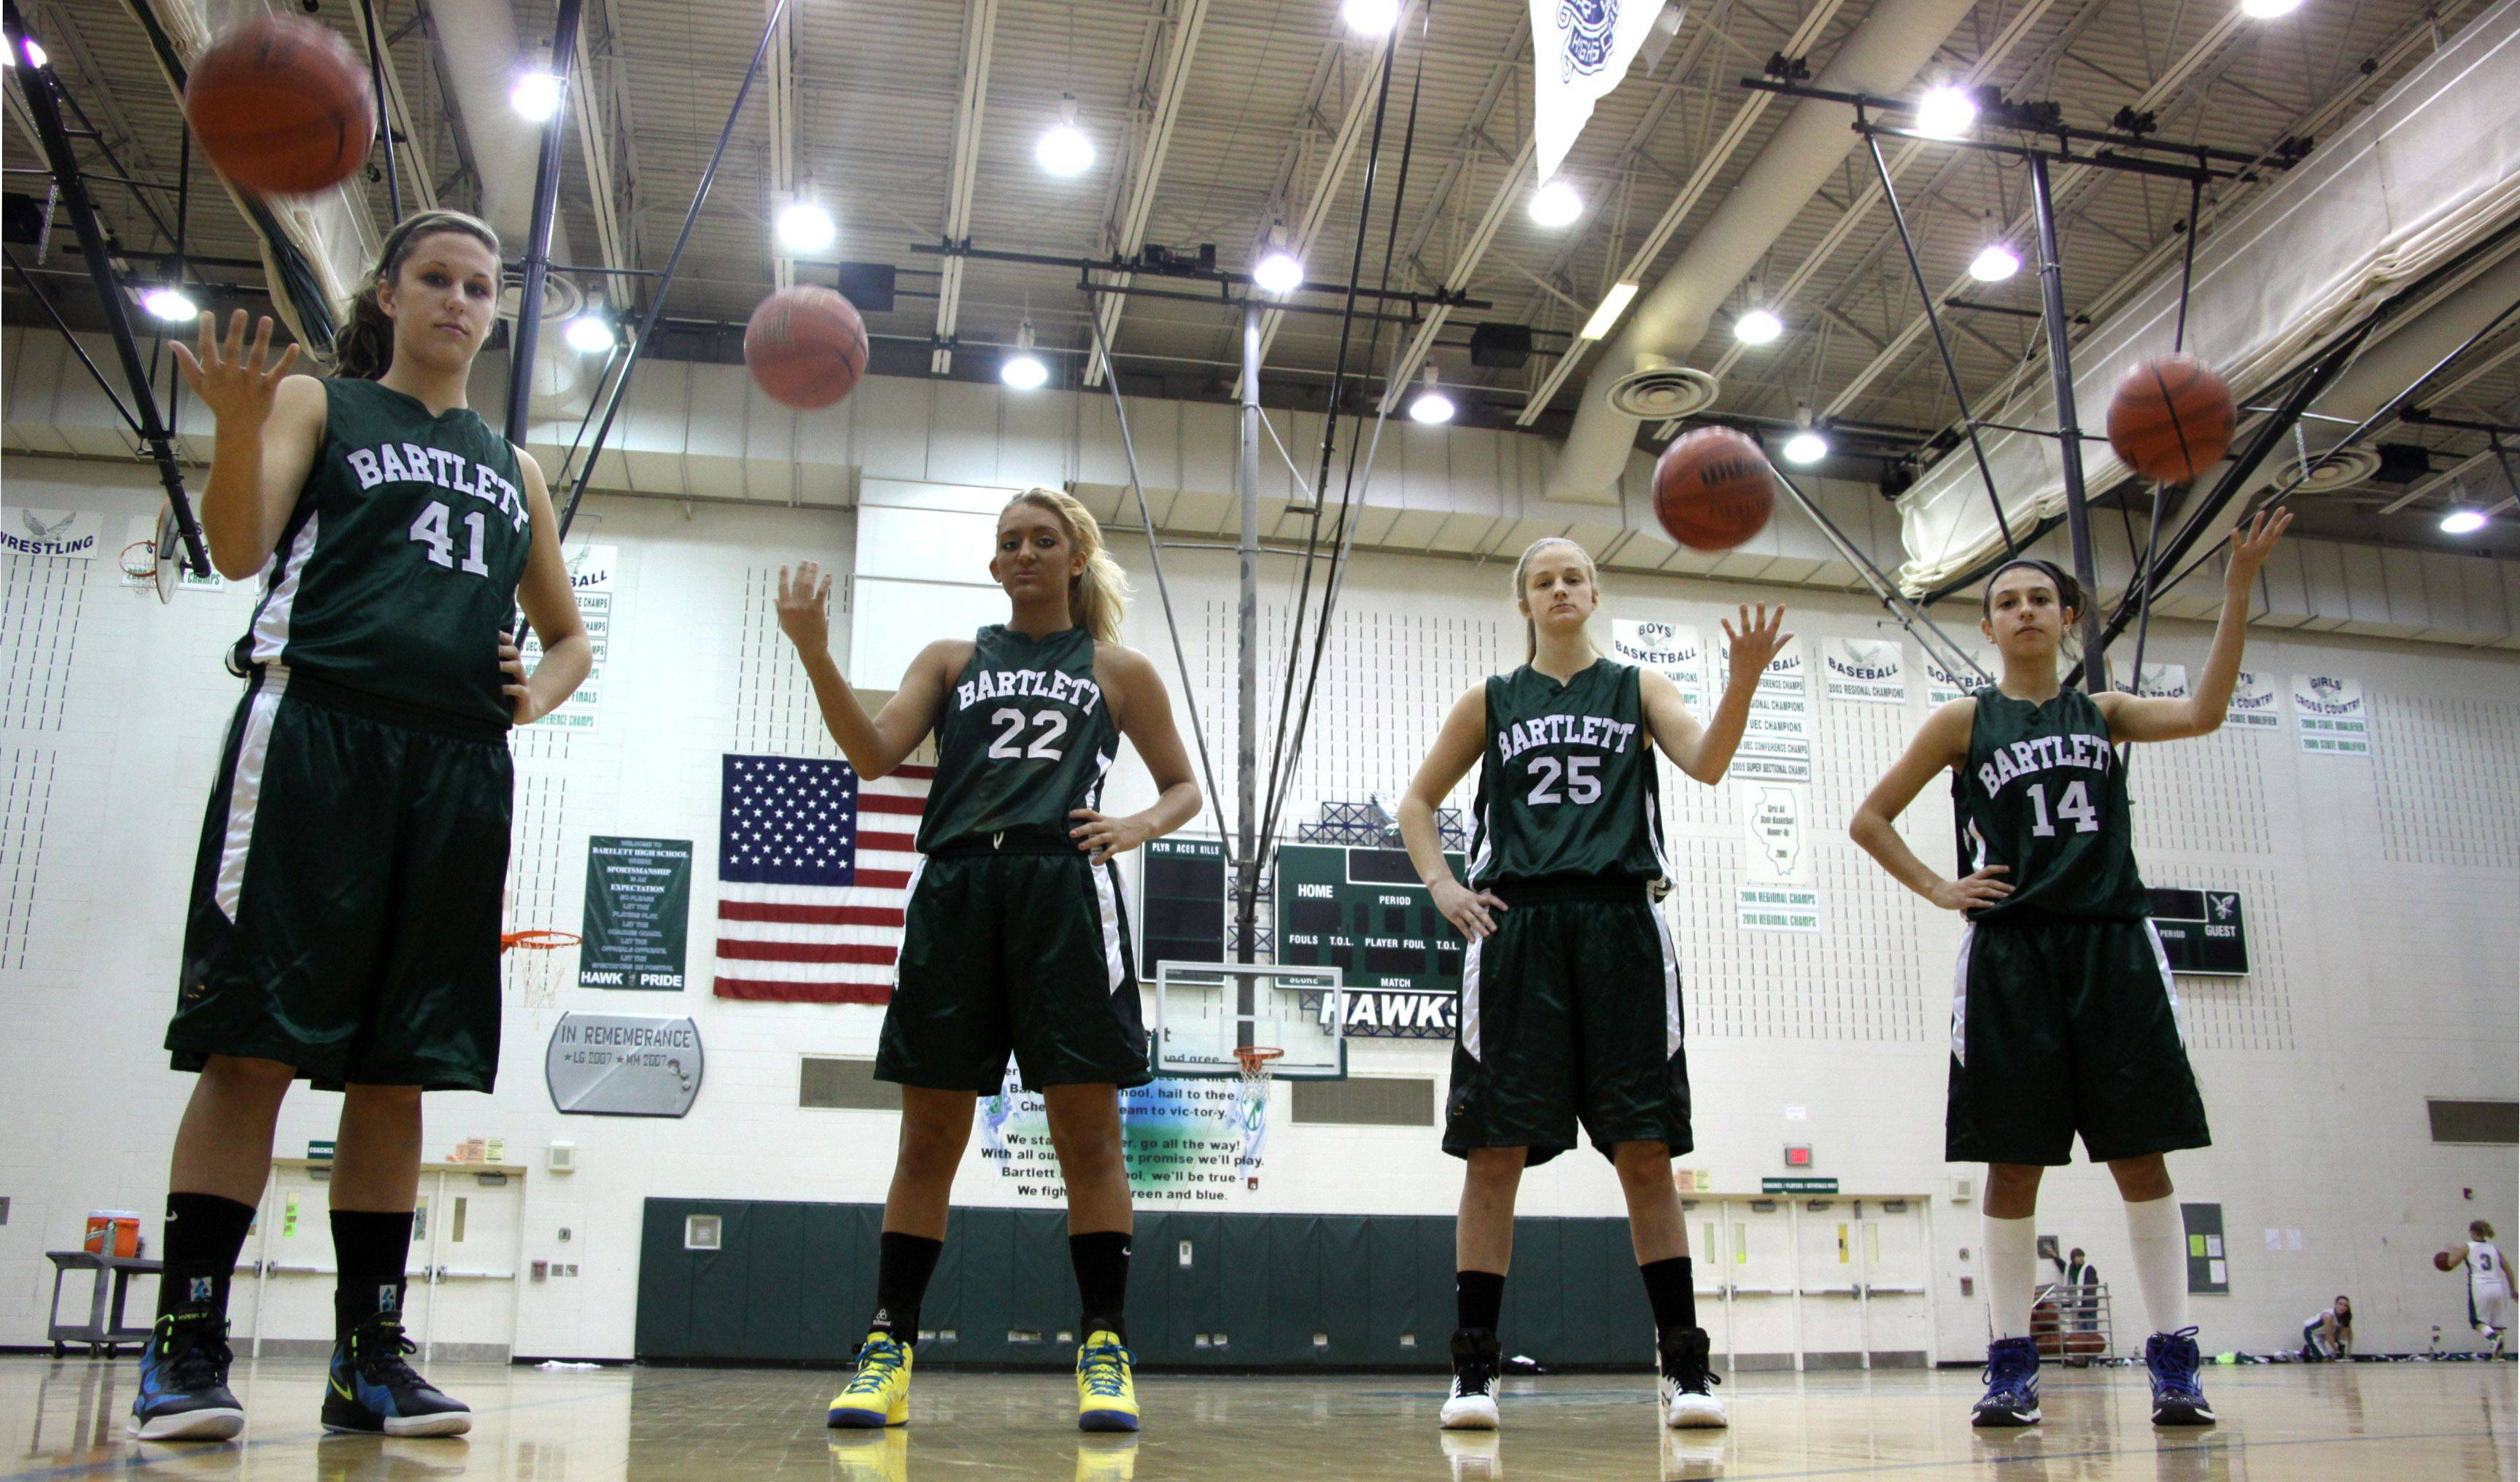 Leading the Hawks of Bartlett for the 2011-2012 season are, from left, Lisa Palmer, Haley Videckis, Kristin Conniff, and Janessa Baker